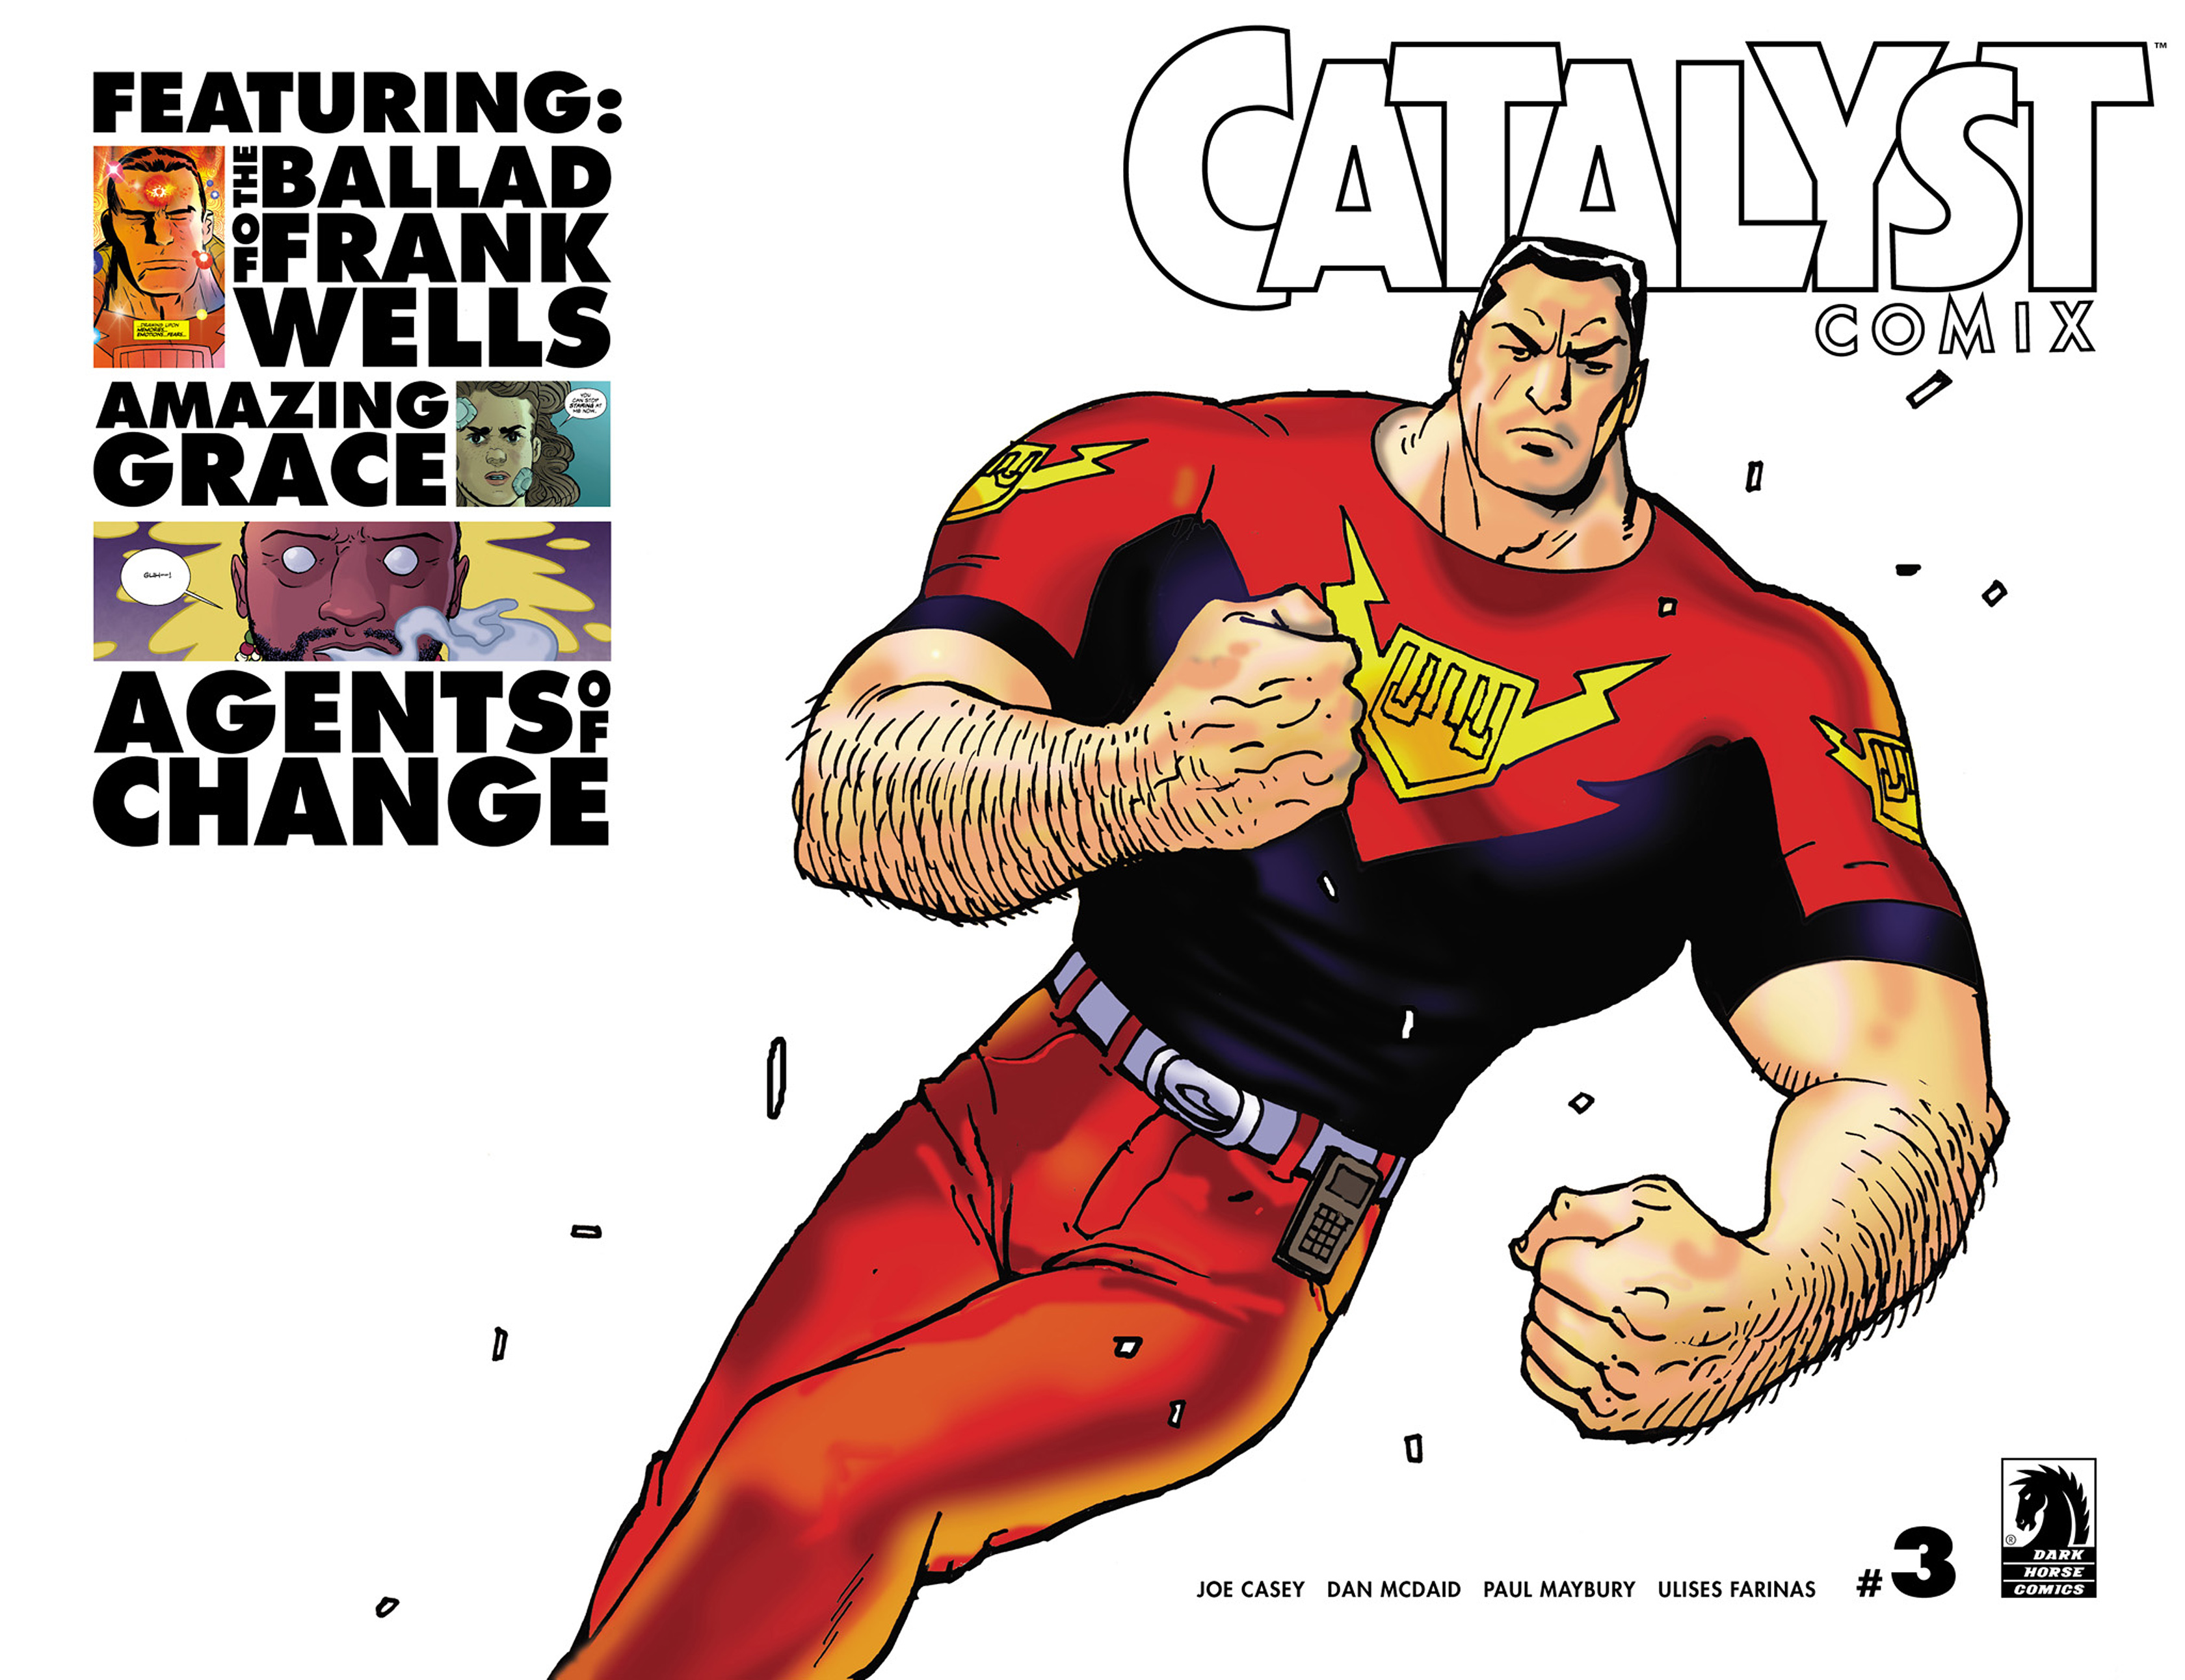 Read online Catalyst Comix comic -  Issue #3 - 2